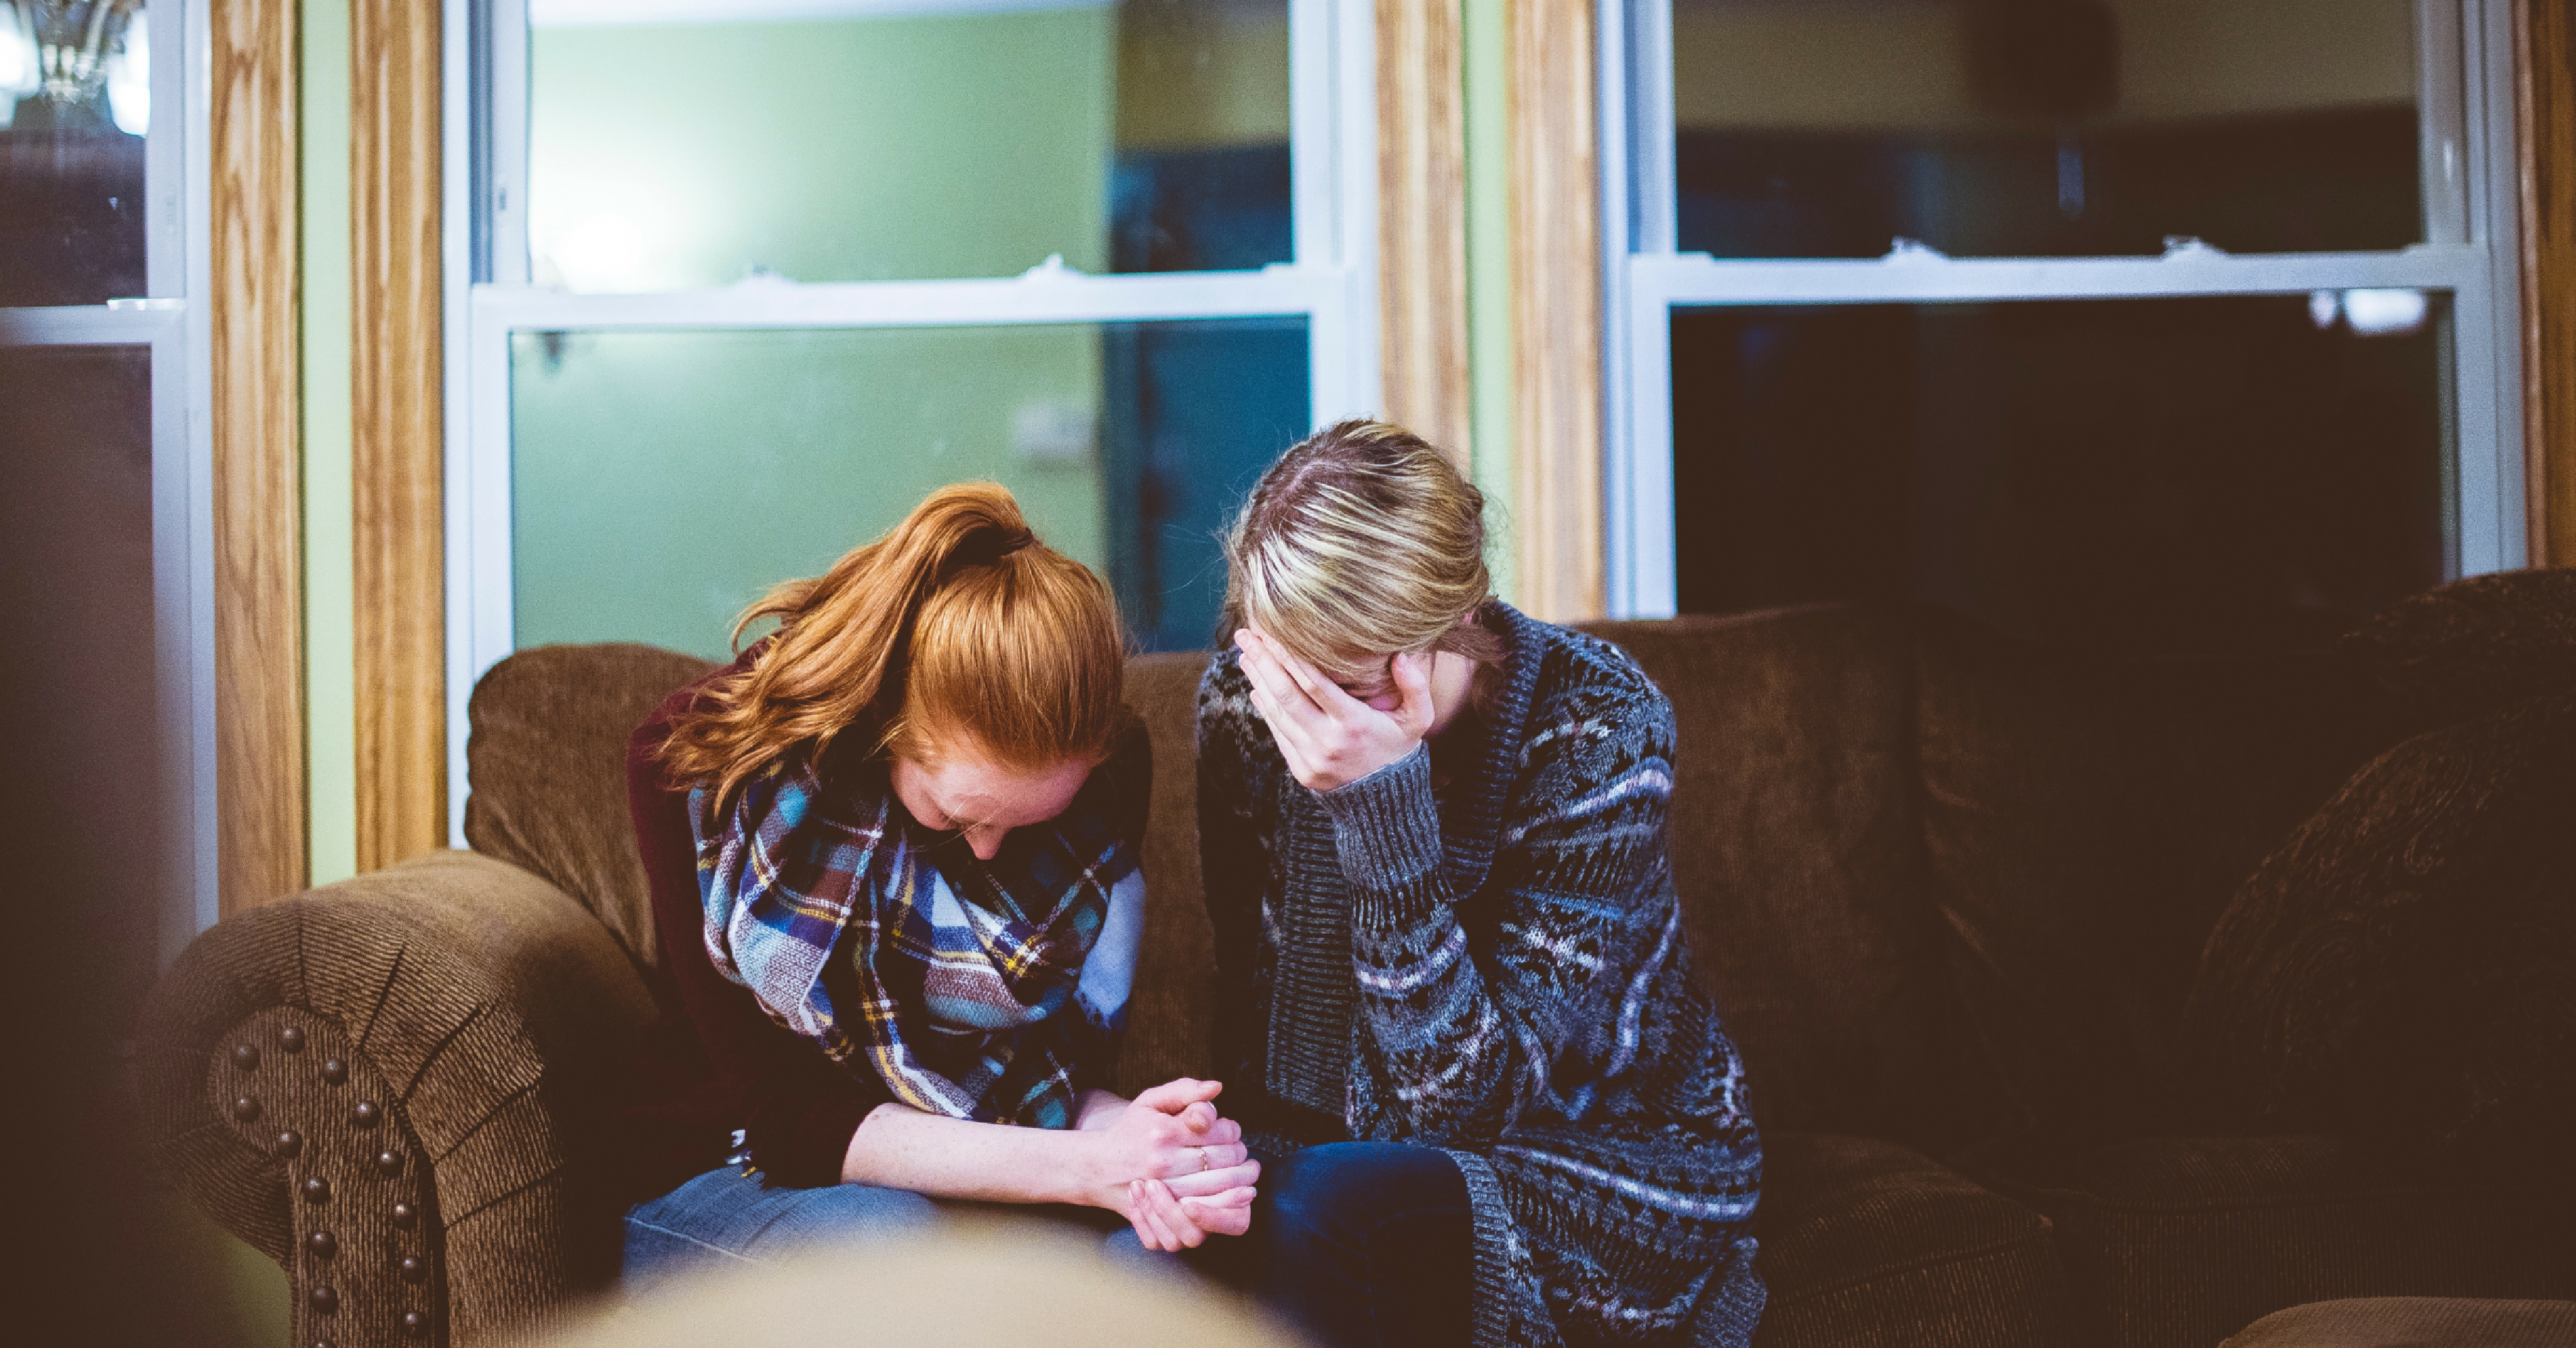 Is there a connection between friendship and prayer? Be amazed by how our colorful prayers can spark some pretty amazing friendships when we need them most. From the Sparkle Circle - a community of women shining for Christ - SunSparkleShine.com